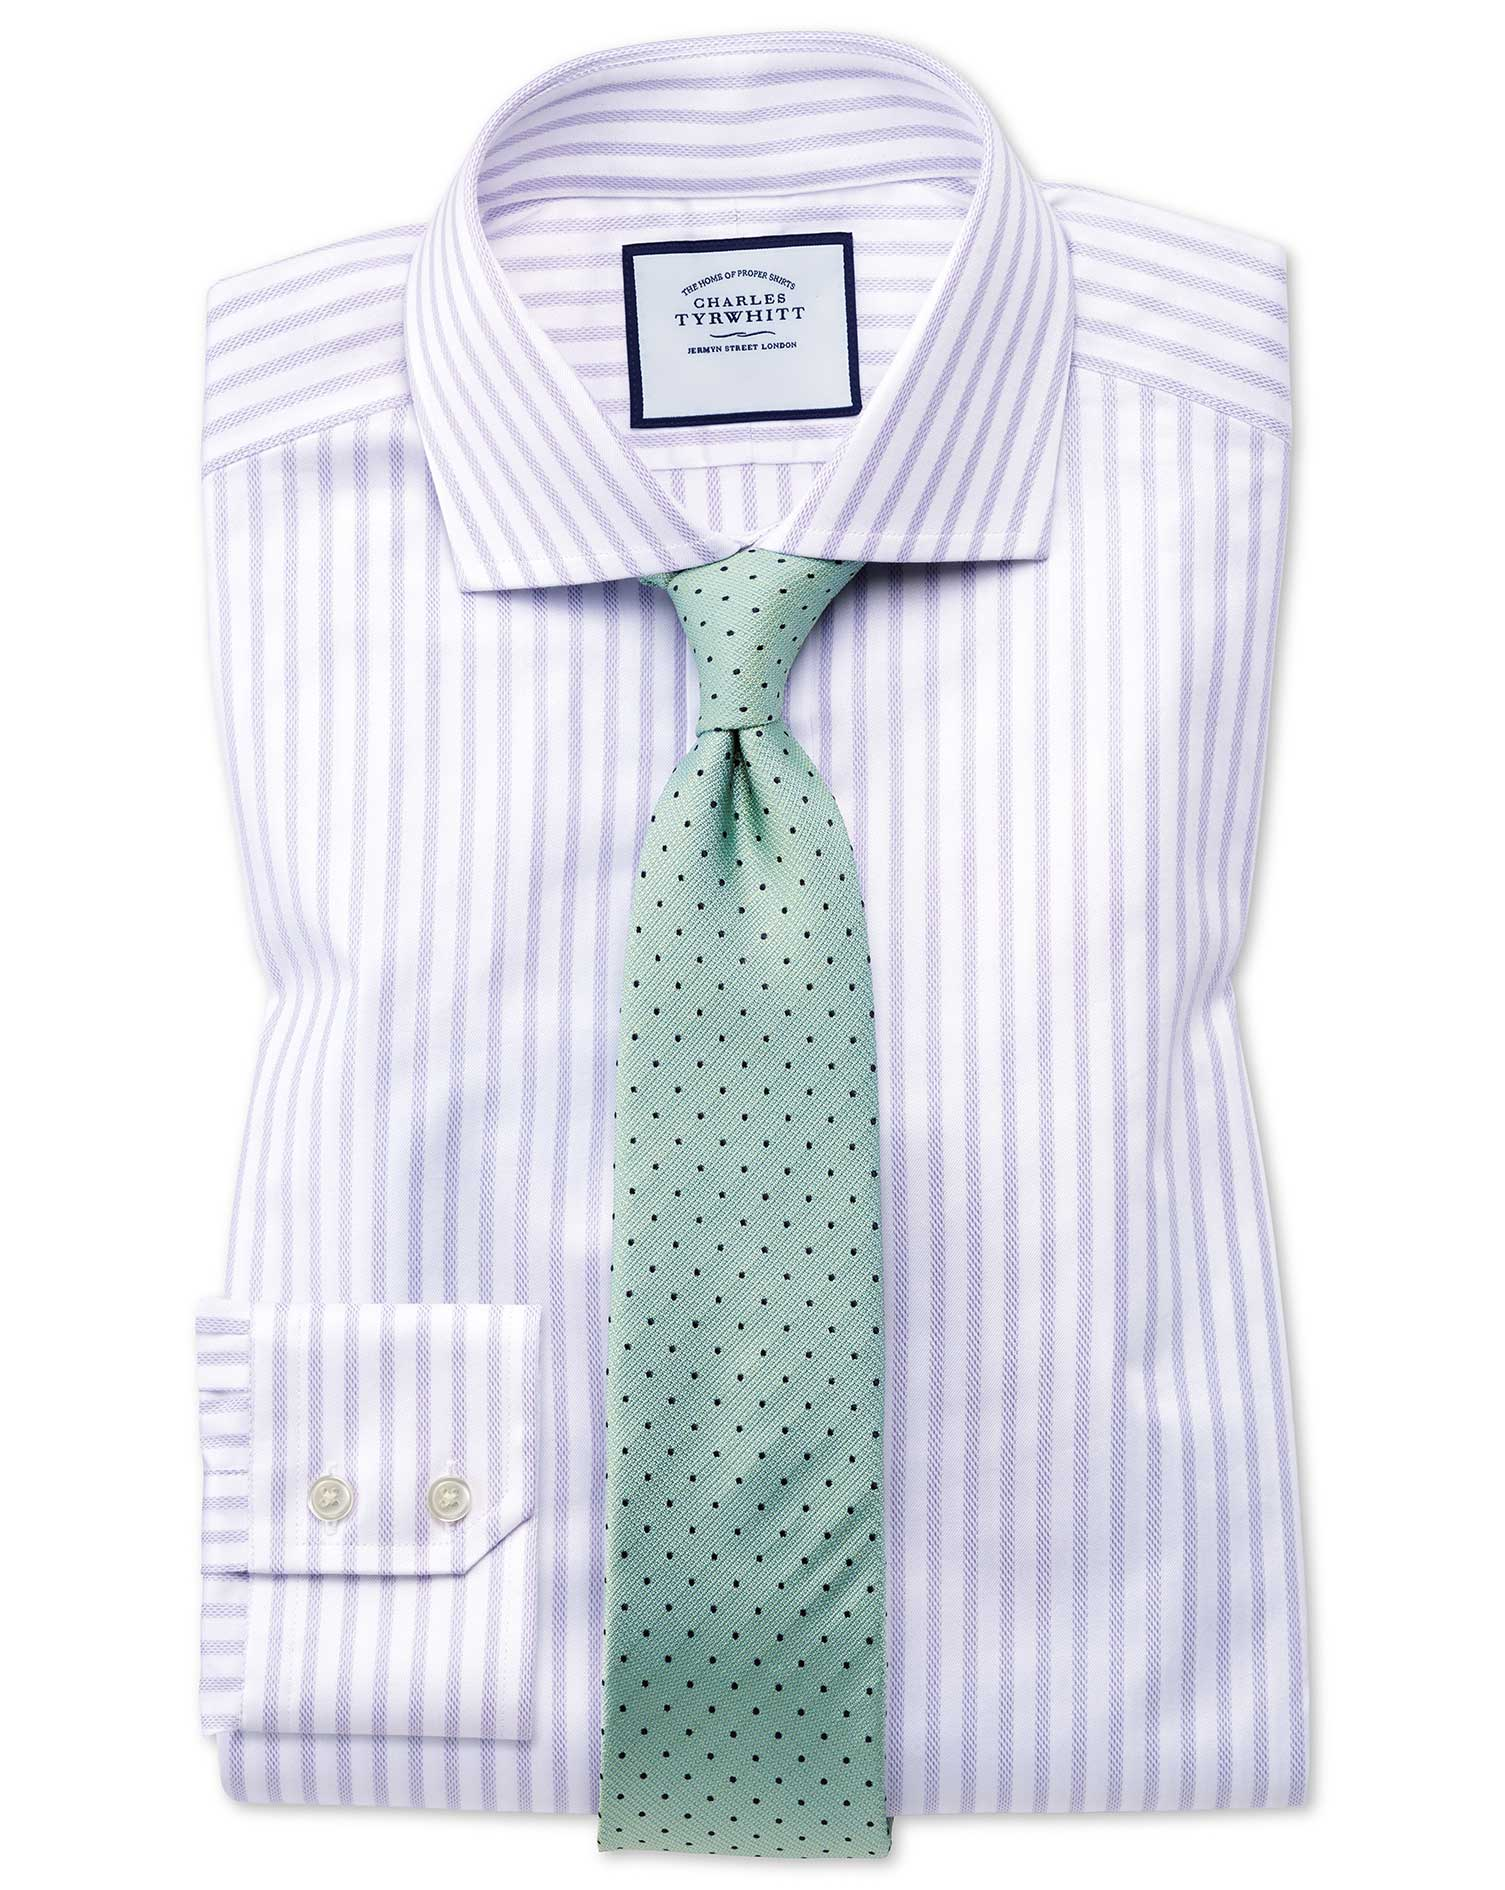 Extra Slim Fit Cutaway Textured Stripe Lilac and White Cotton Formal Shirt Single Cuff Size 15.5/35